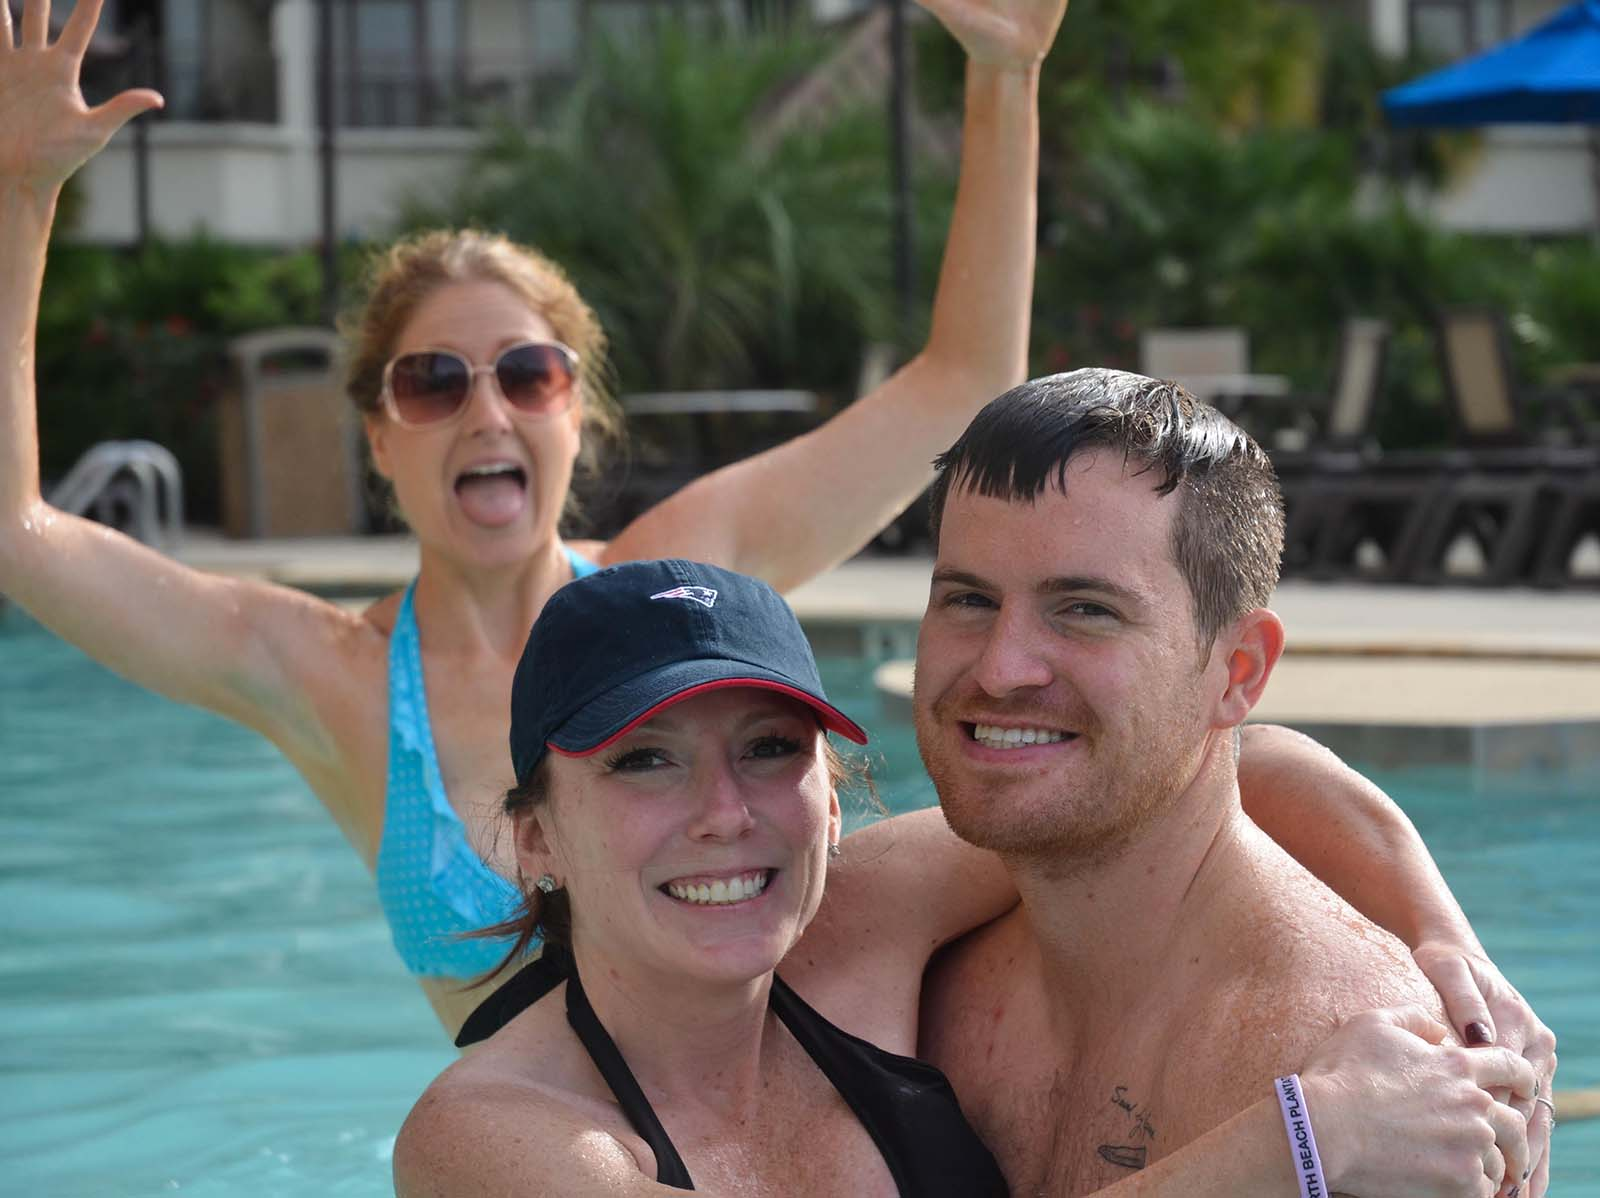 Couple selfie in pool with girl jumping in background